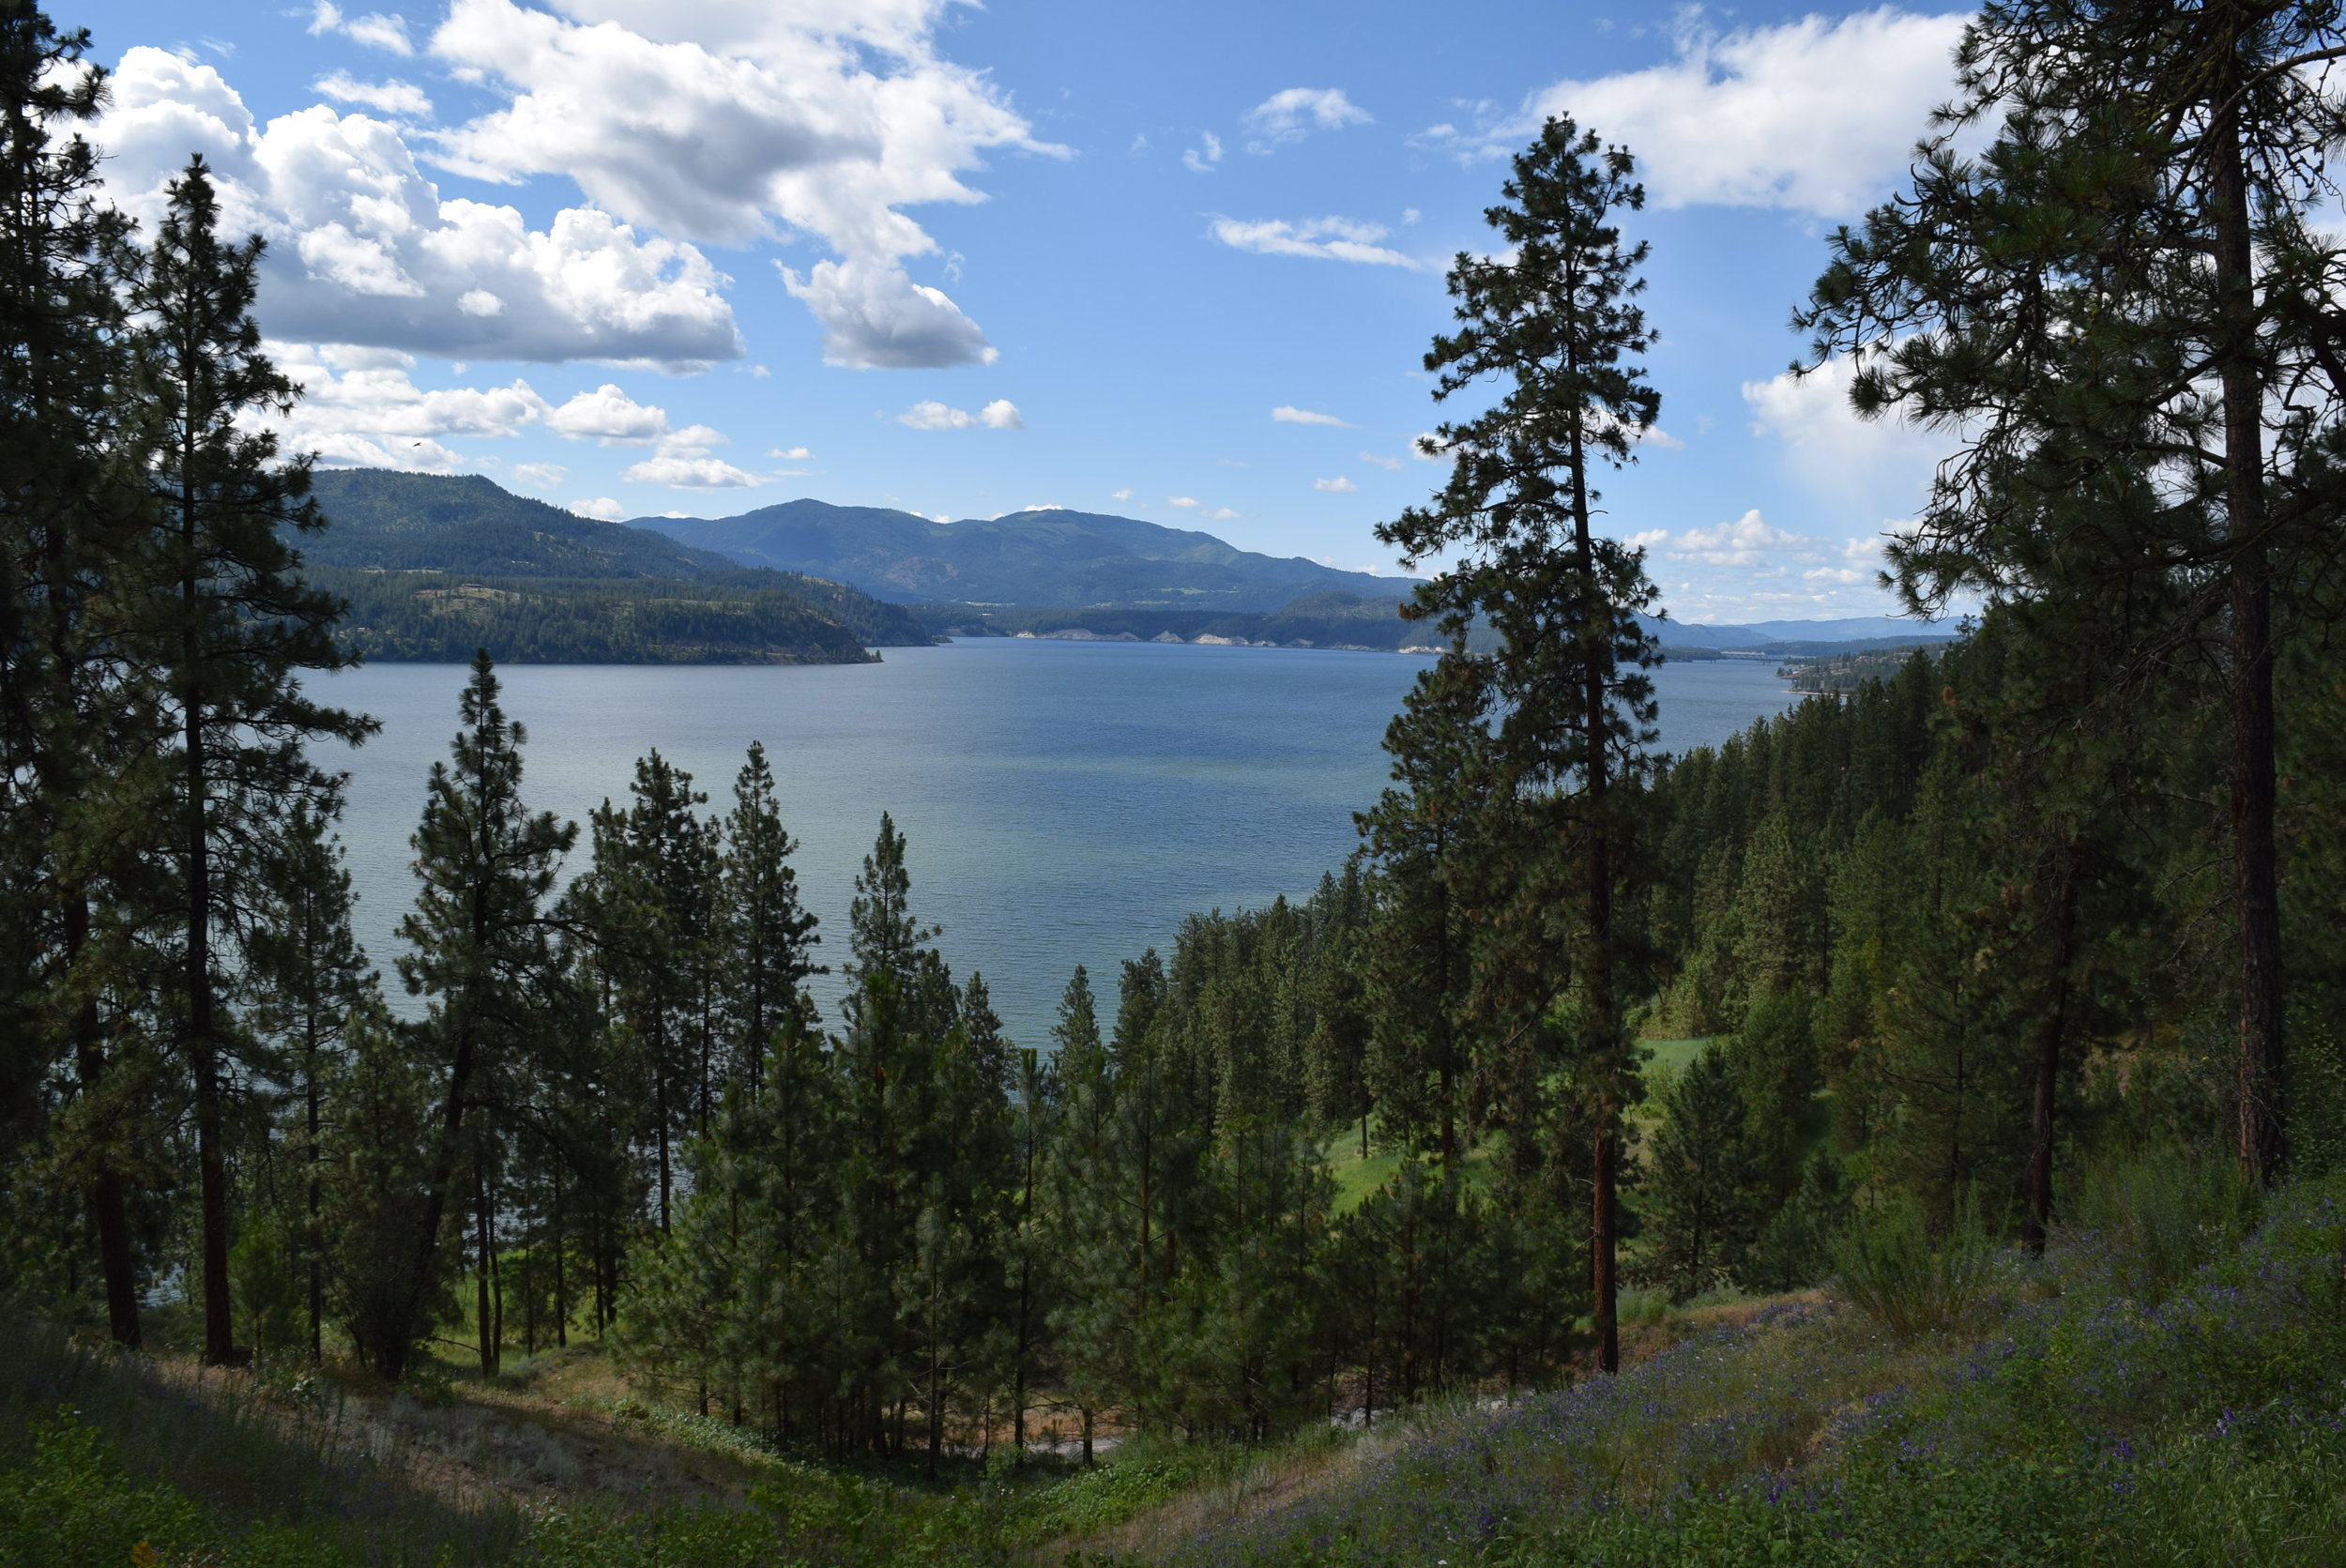 Lake Roosevelt, on the Columbia River.